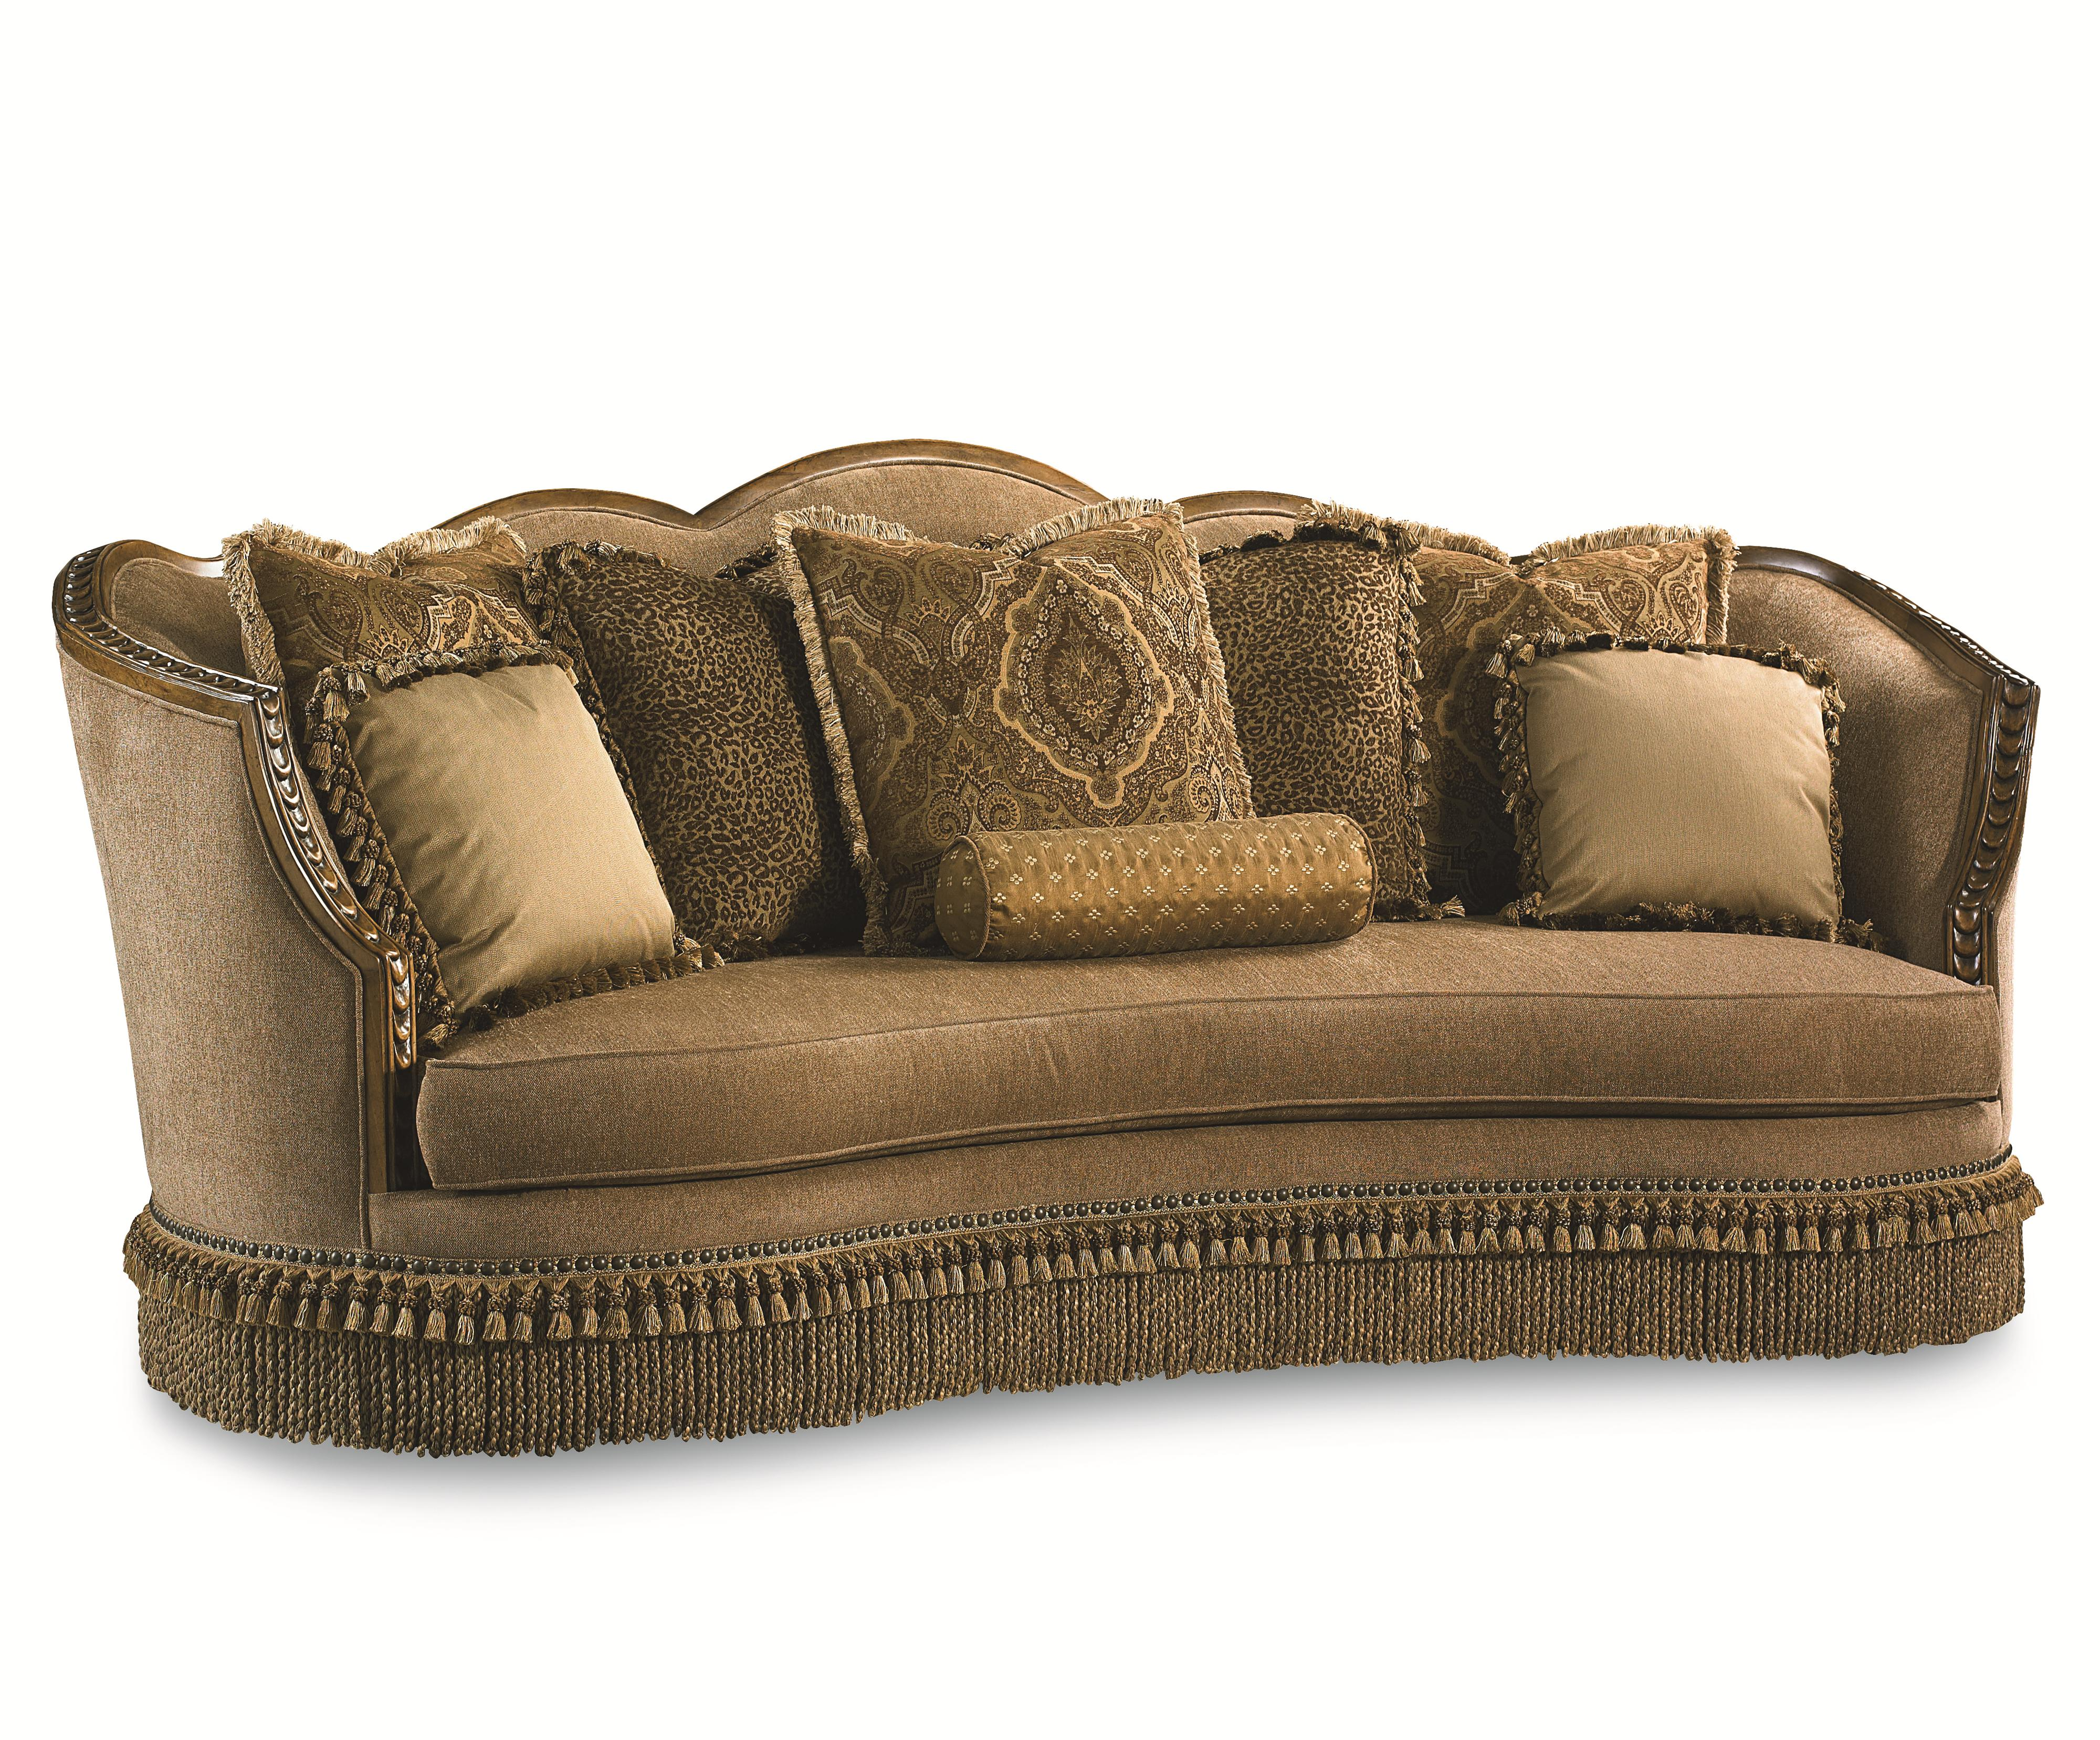 pemberleigh sofa with nailhead trim and exposed wood trim. Black Bedroom Furniture Sets. Home Design Ideas